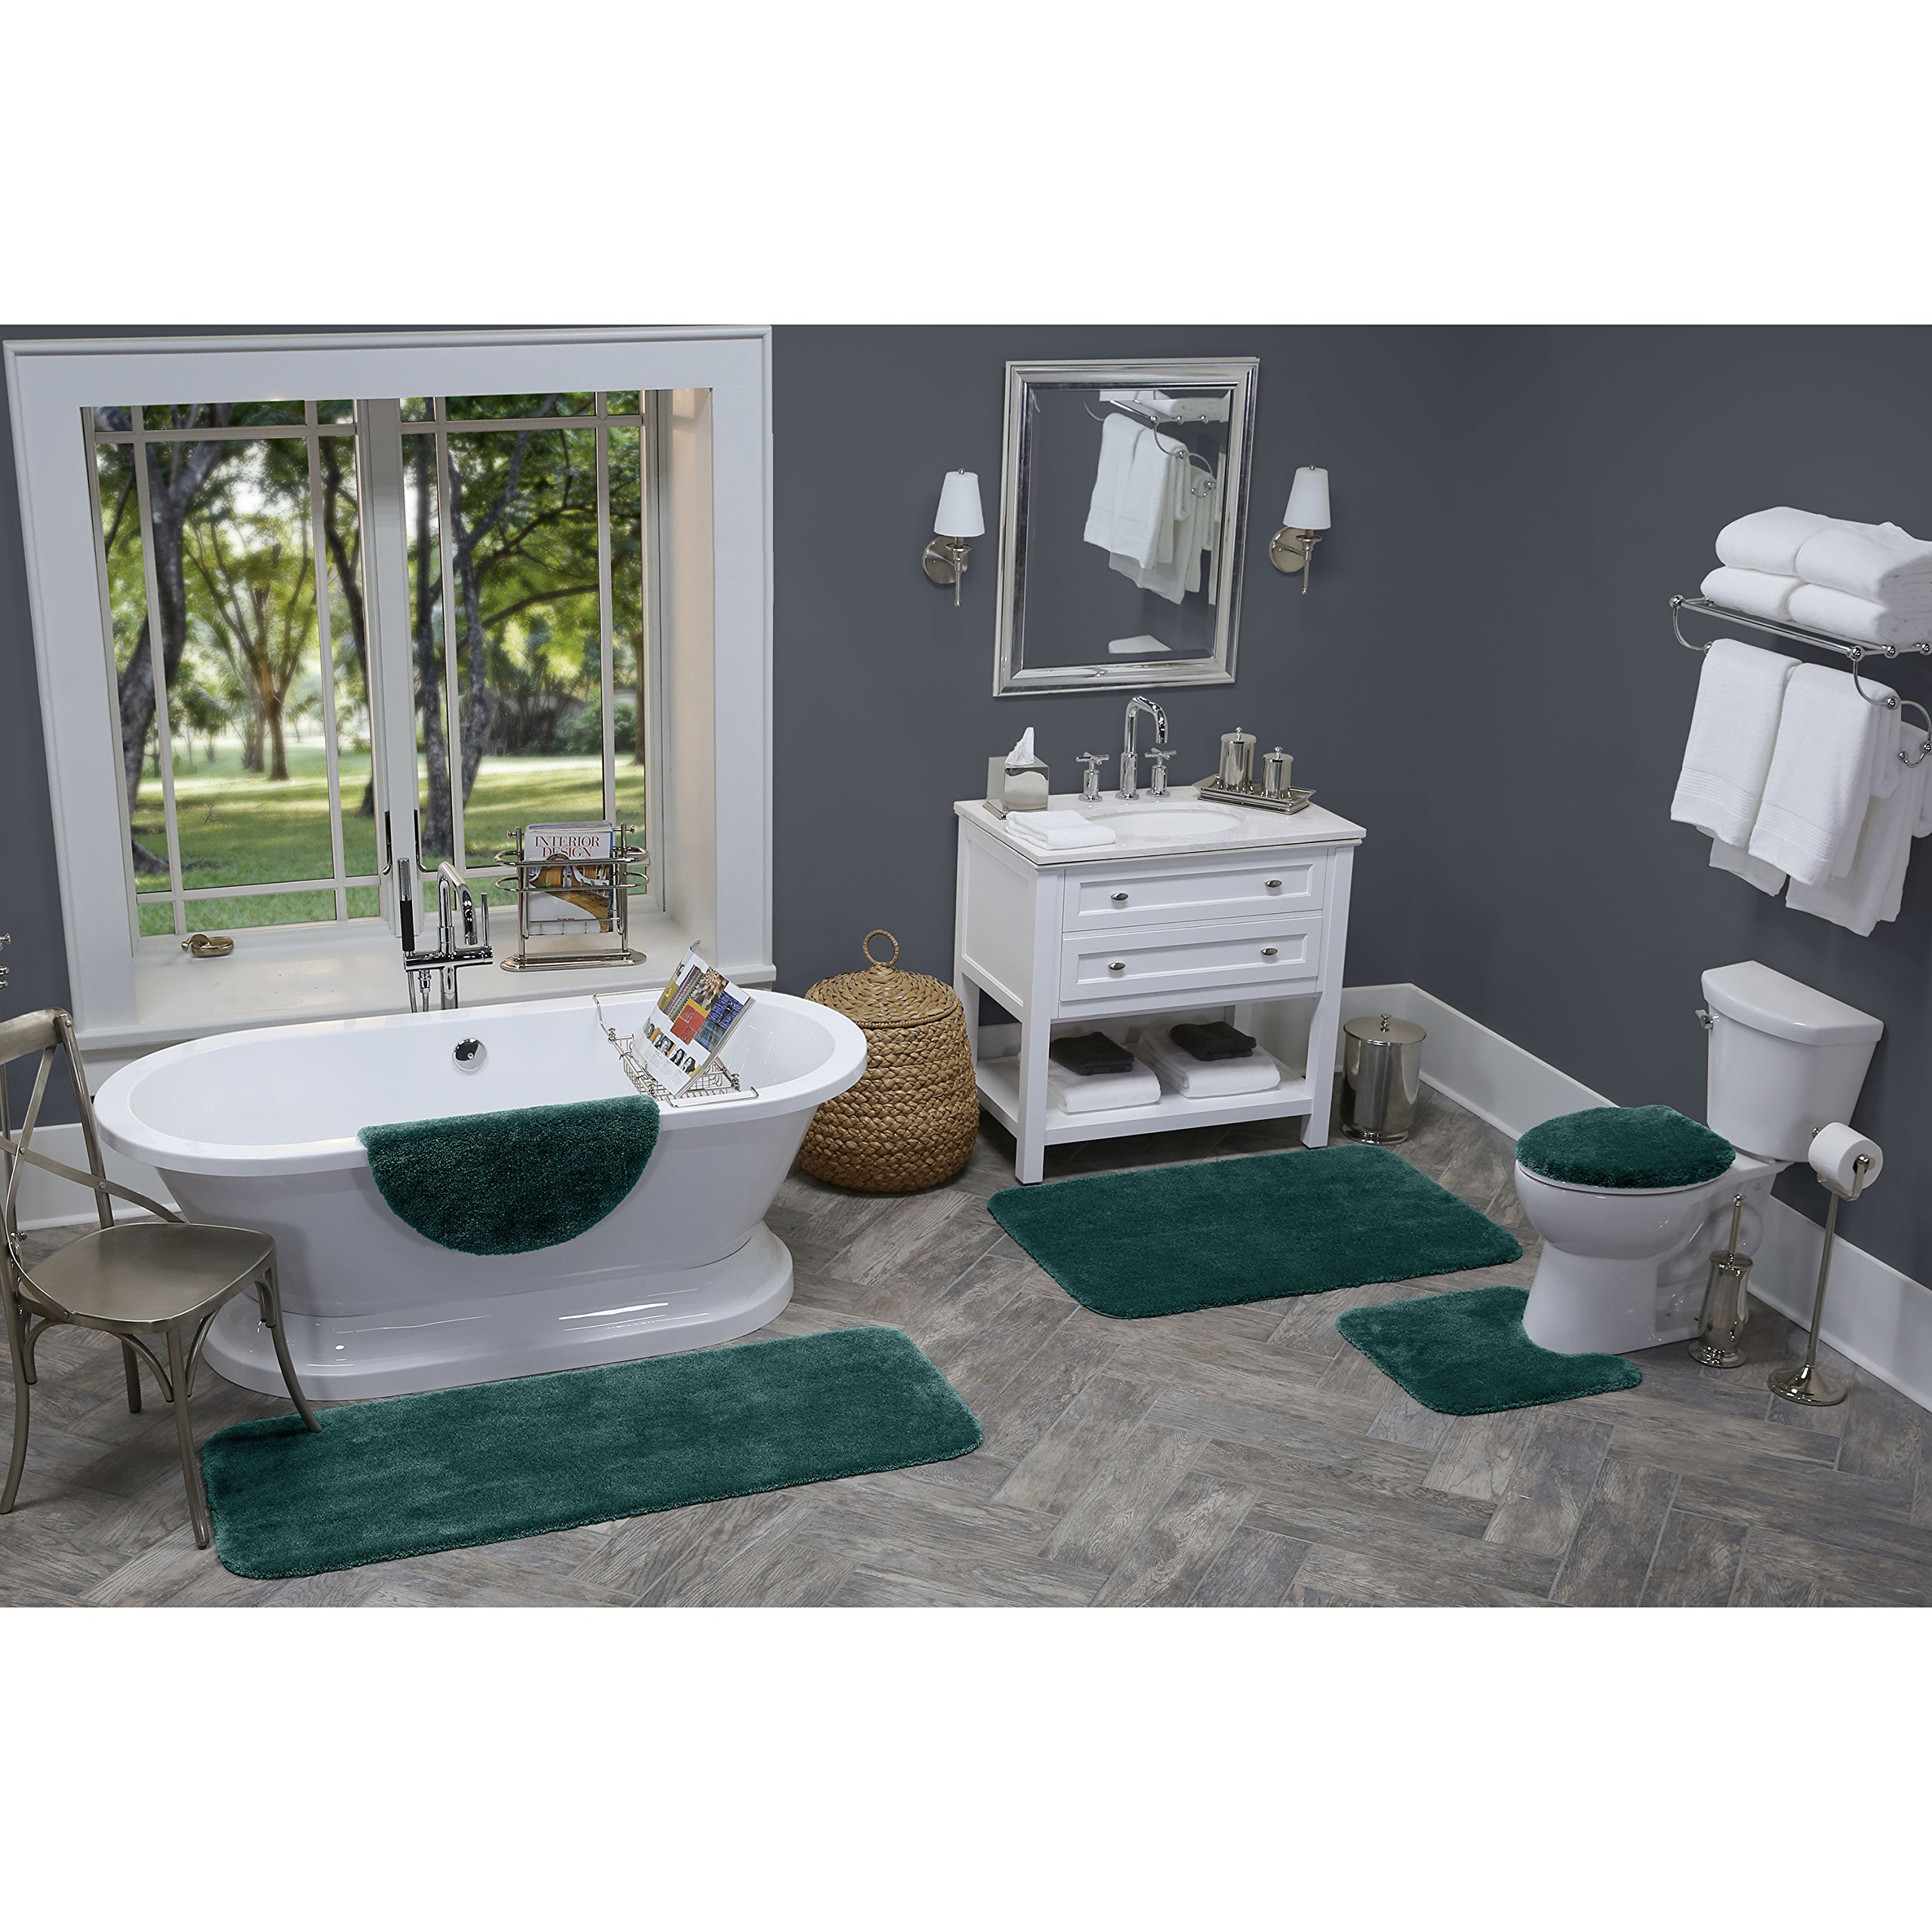 Maples Rugs Bathroom Rugs - Cloud Bath 20'' x 34'' Washable Non Slip Bath Mat [Made in USA] for Kitchen, Shower, and Bathroom, Teal Quartz by Maples Rugs